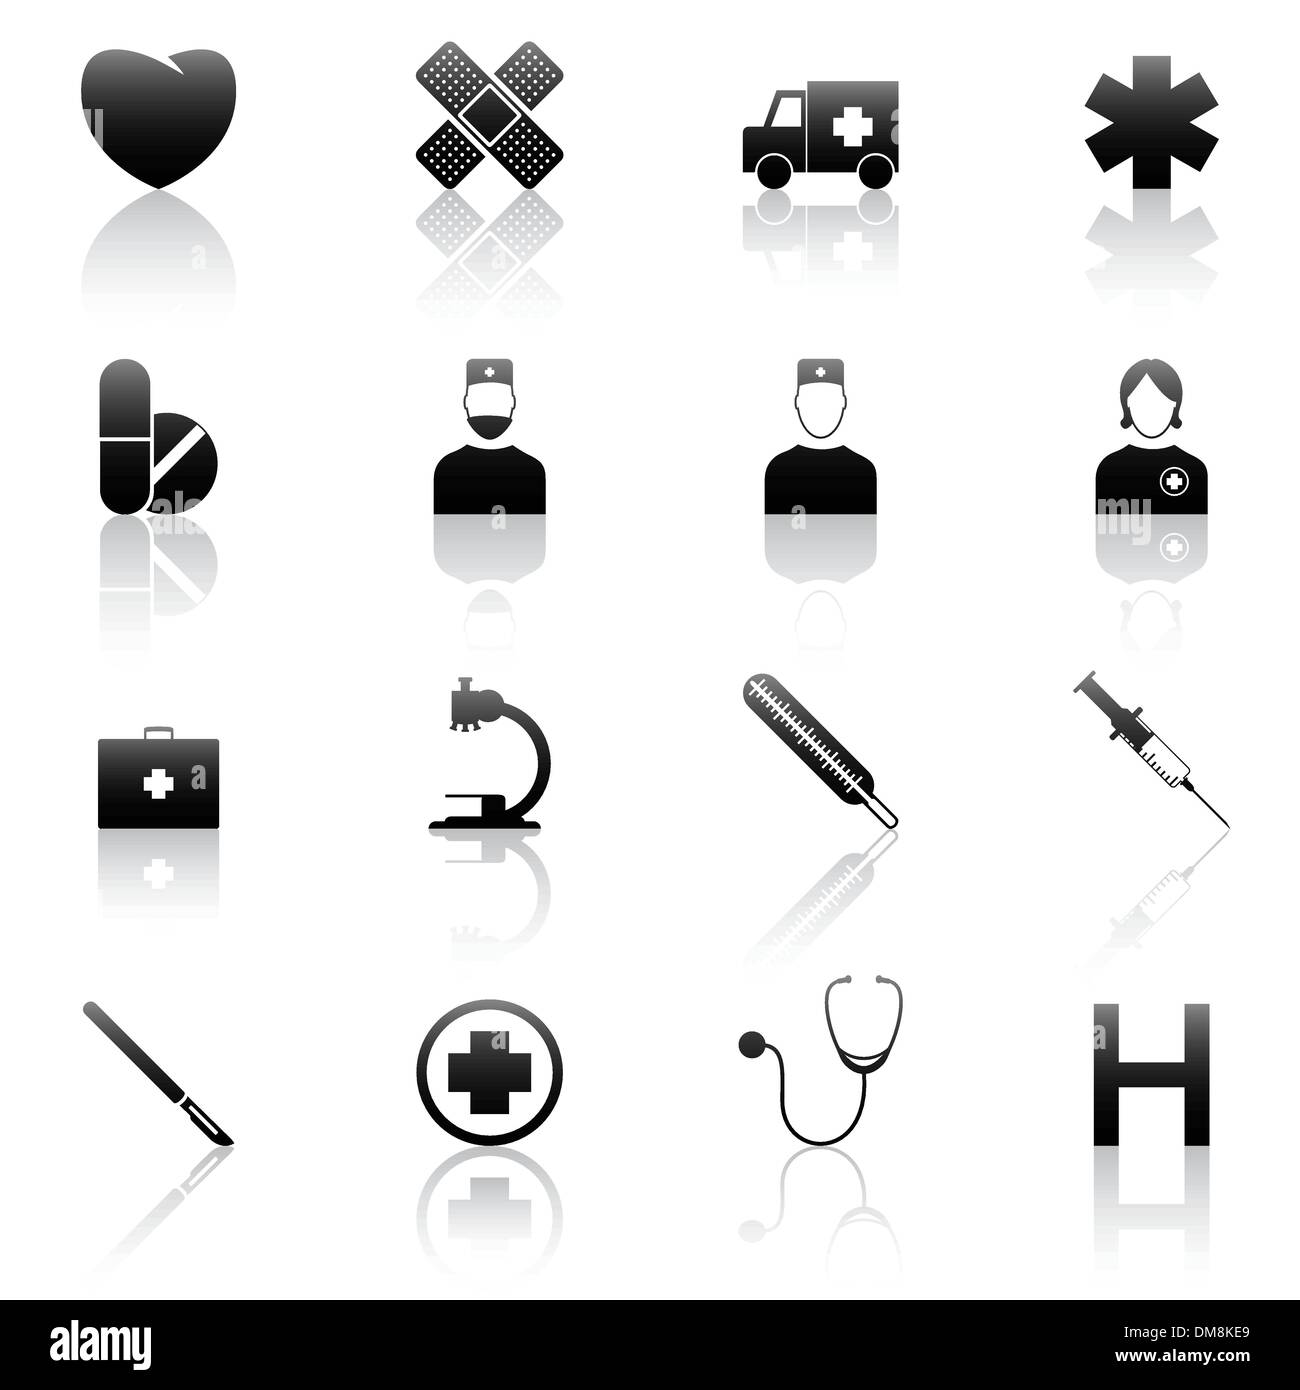 Medical icons - Stock Image